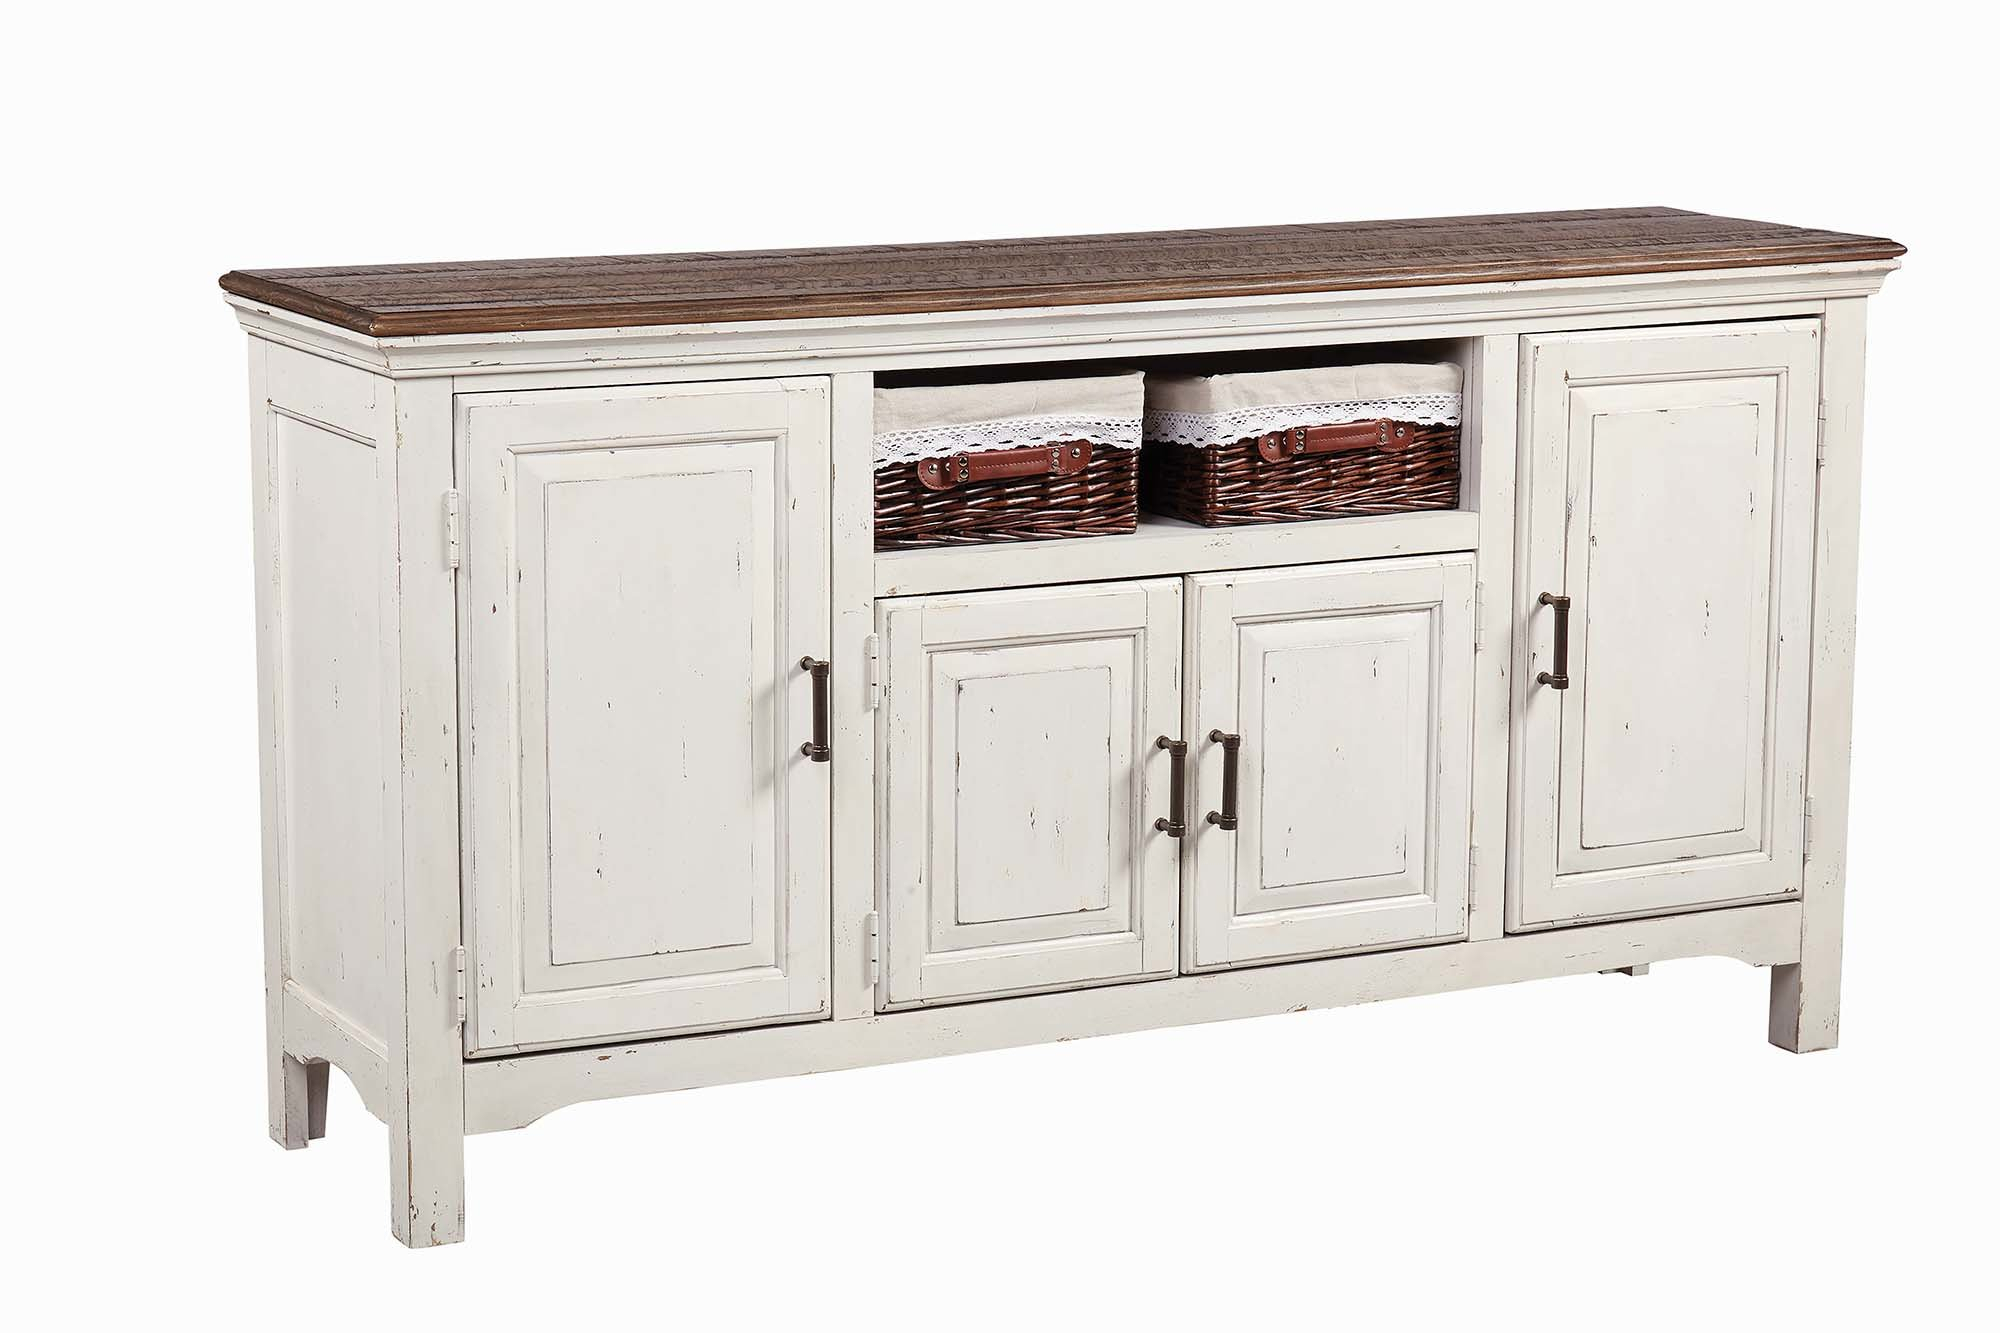 60 In Sideboard | Wayfair.ca Intended For Chaffins Sideboards (Photo 14 of 30)